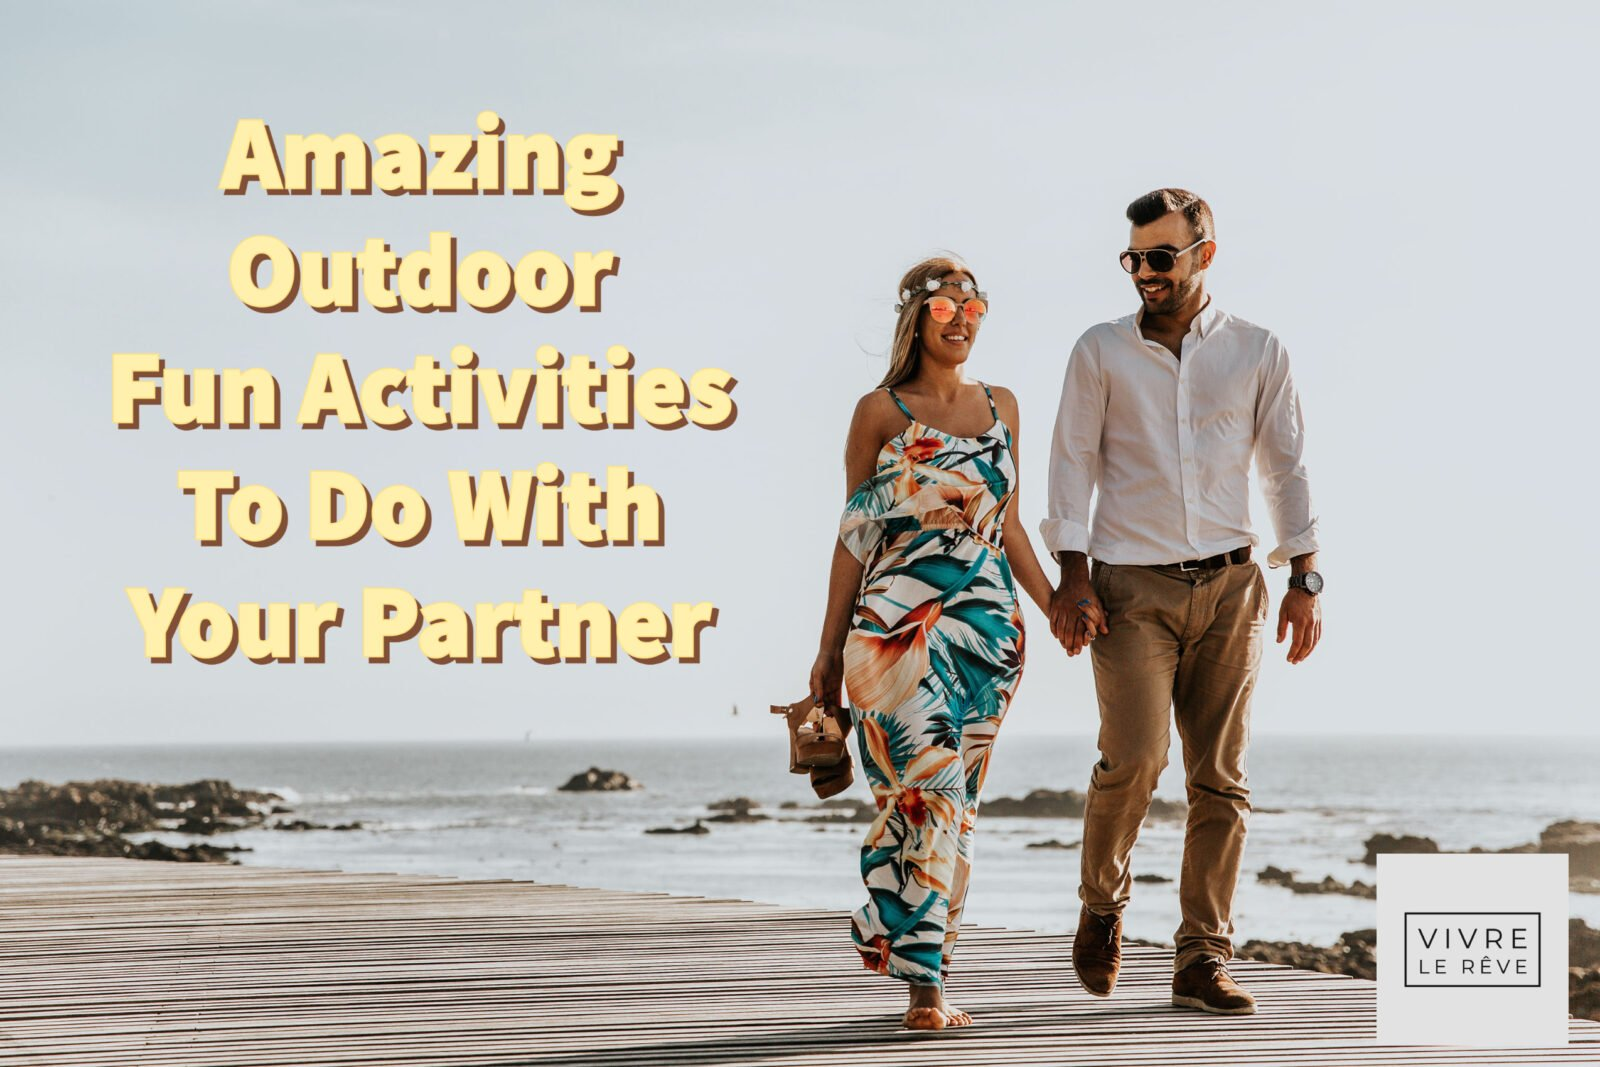 Amazing Outdoor Fun Activities To Do With Your Partner